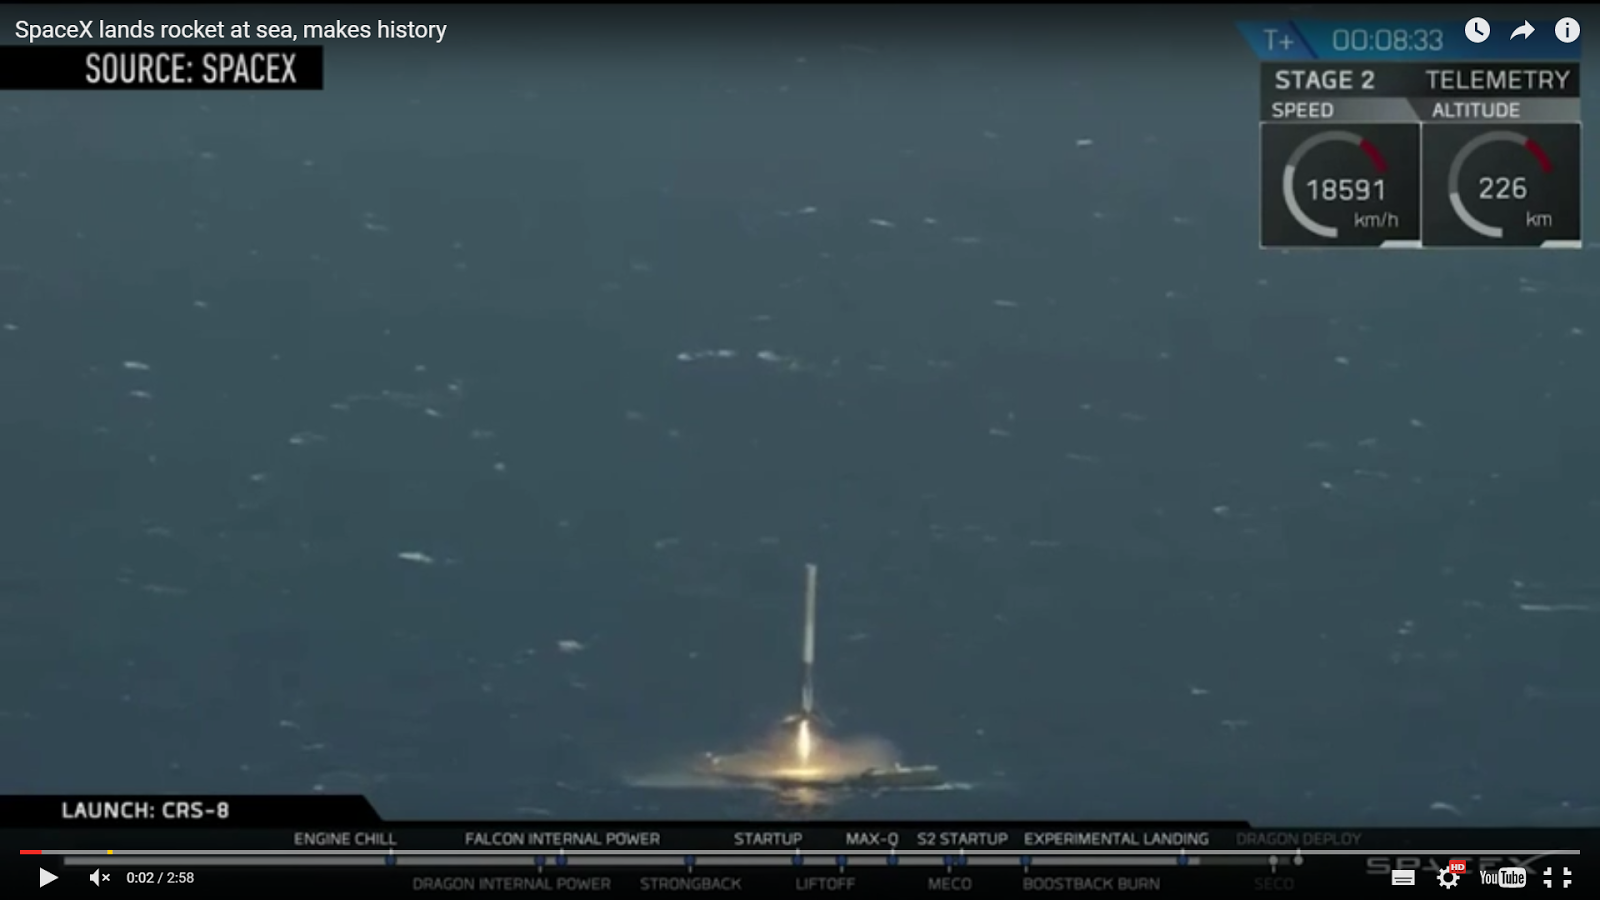 WATCH: History Made as SpaceX Lands Rocket on Drone Ship at Sea